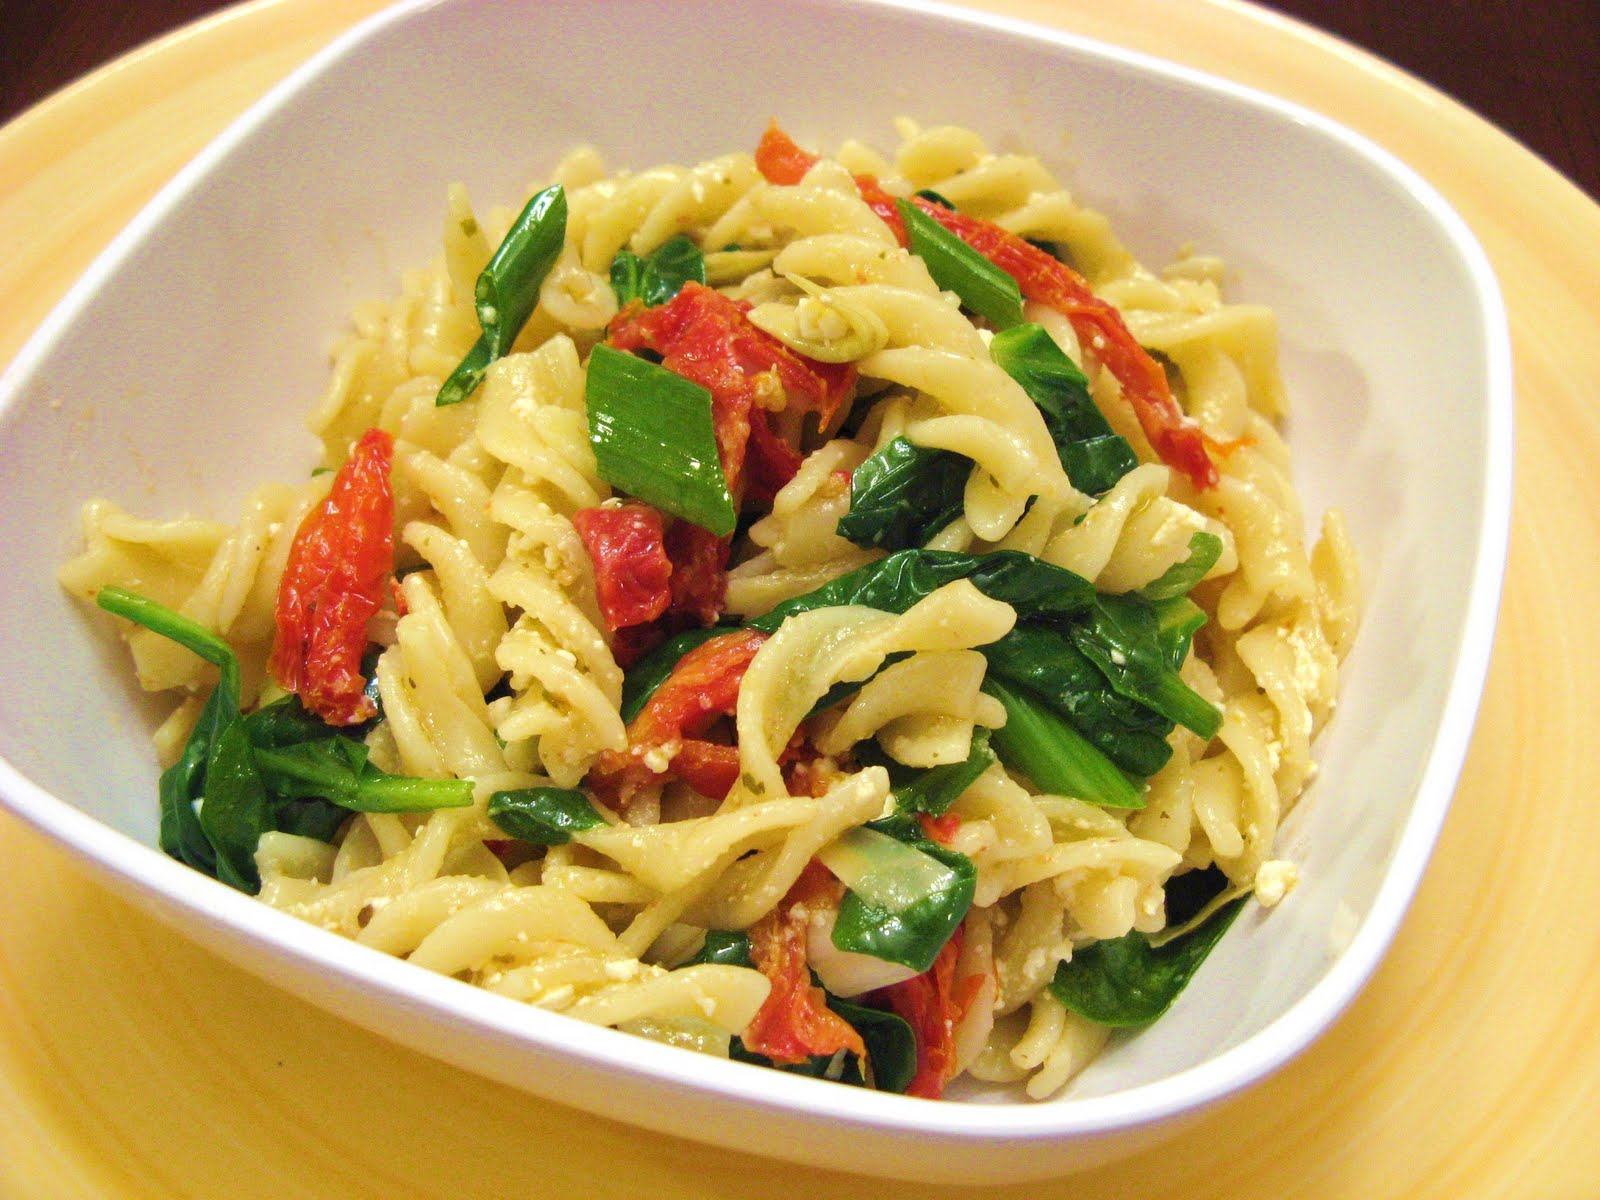 Pasta with Artichokes, Sun Dried Tomatoes, and Spinach